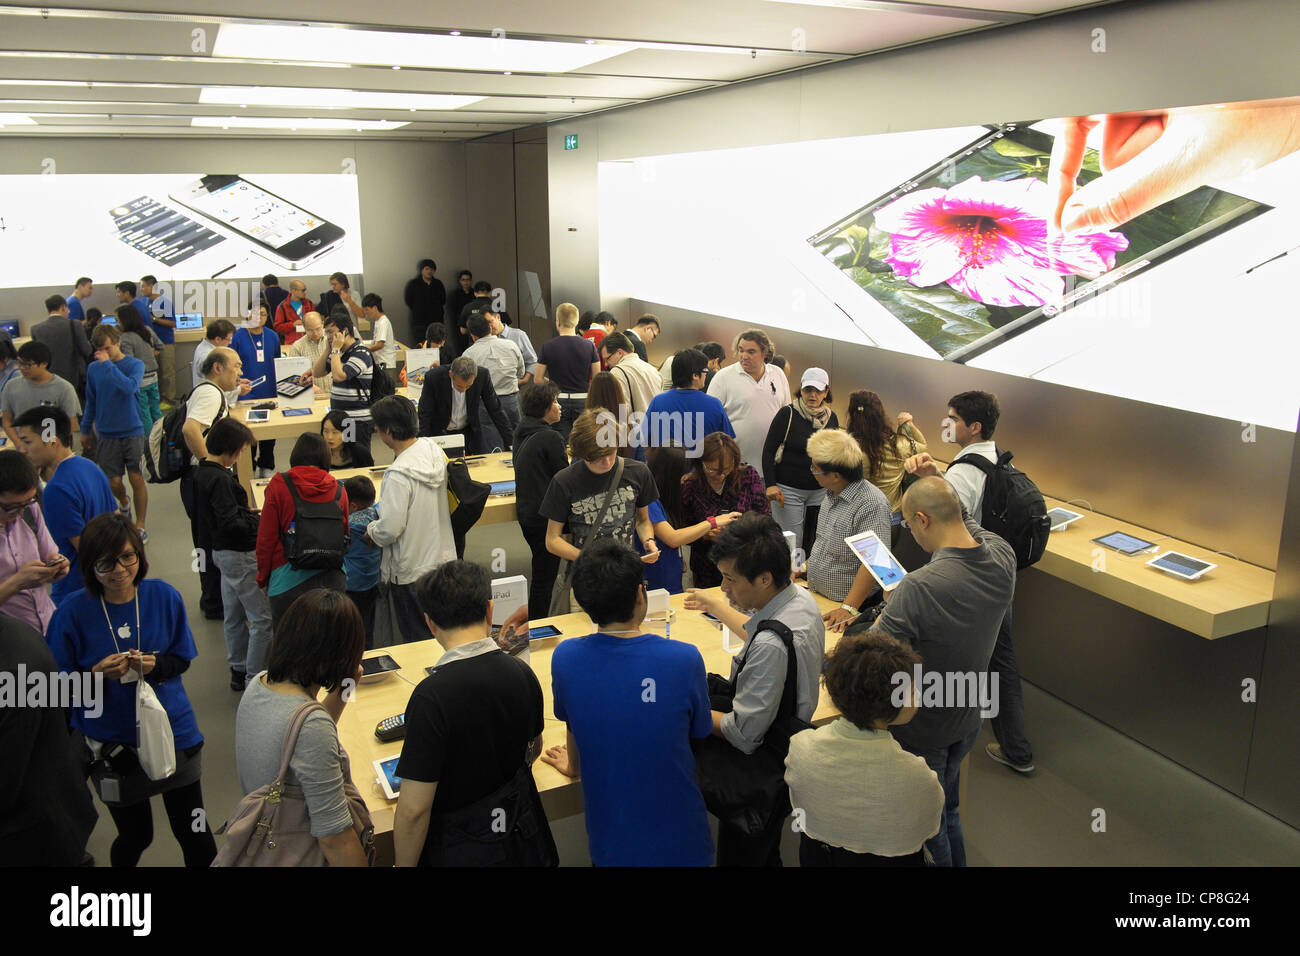 Interior view of busy Apple store in Hong Kong - Stock Image